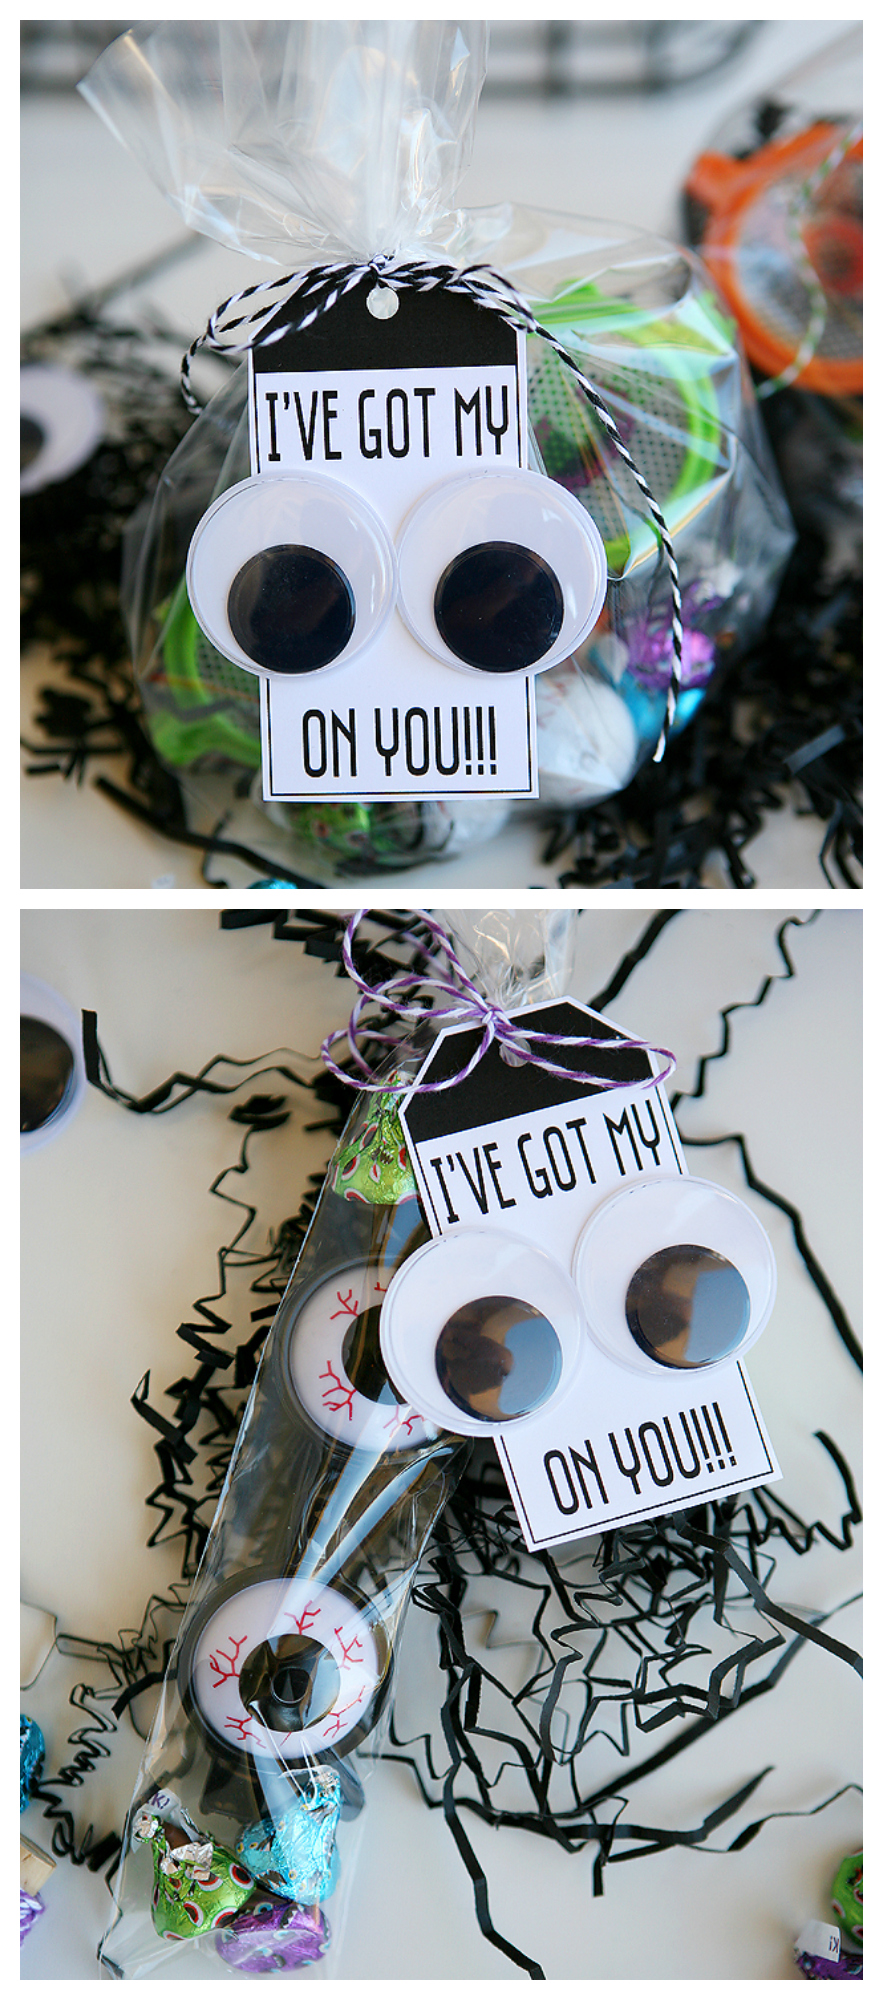 I've Got My EYES On You | Fun Halloween Goody Bags #halloween #halloweenprintables #ivegotmyeyesonyou #halloweengoodybag